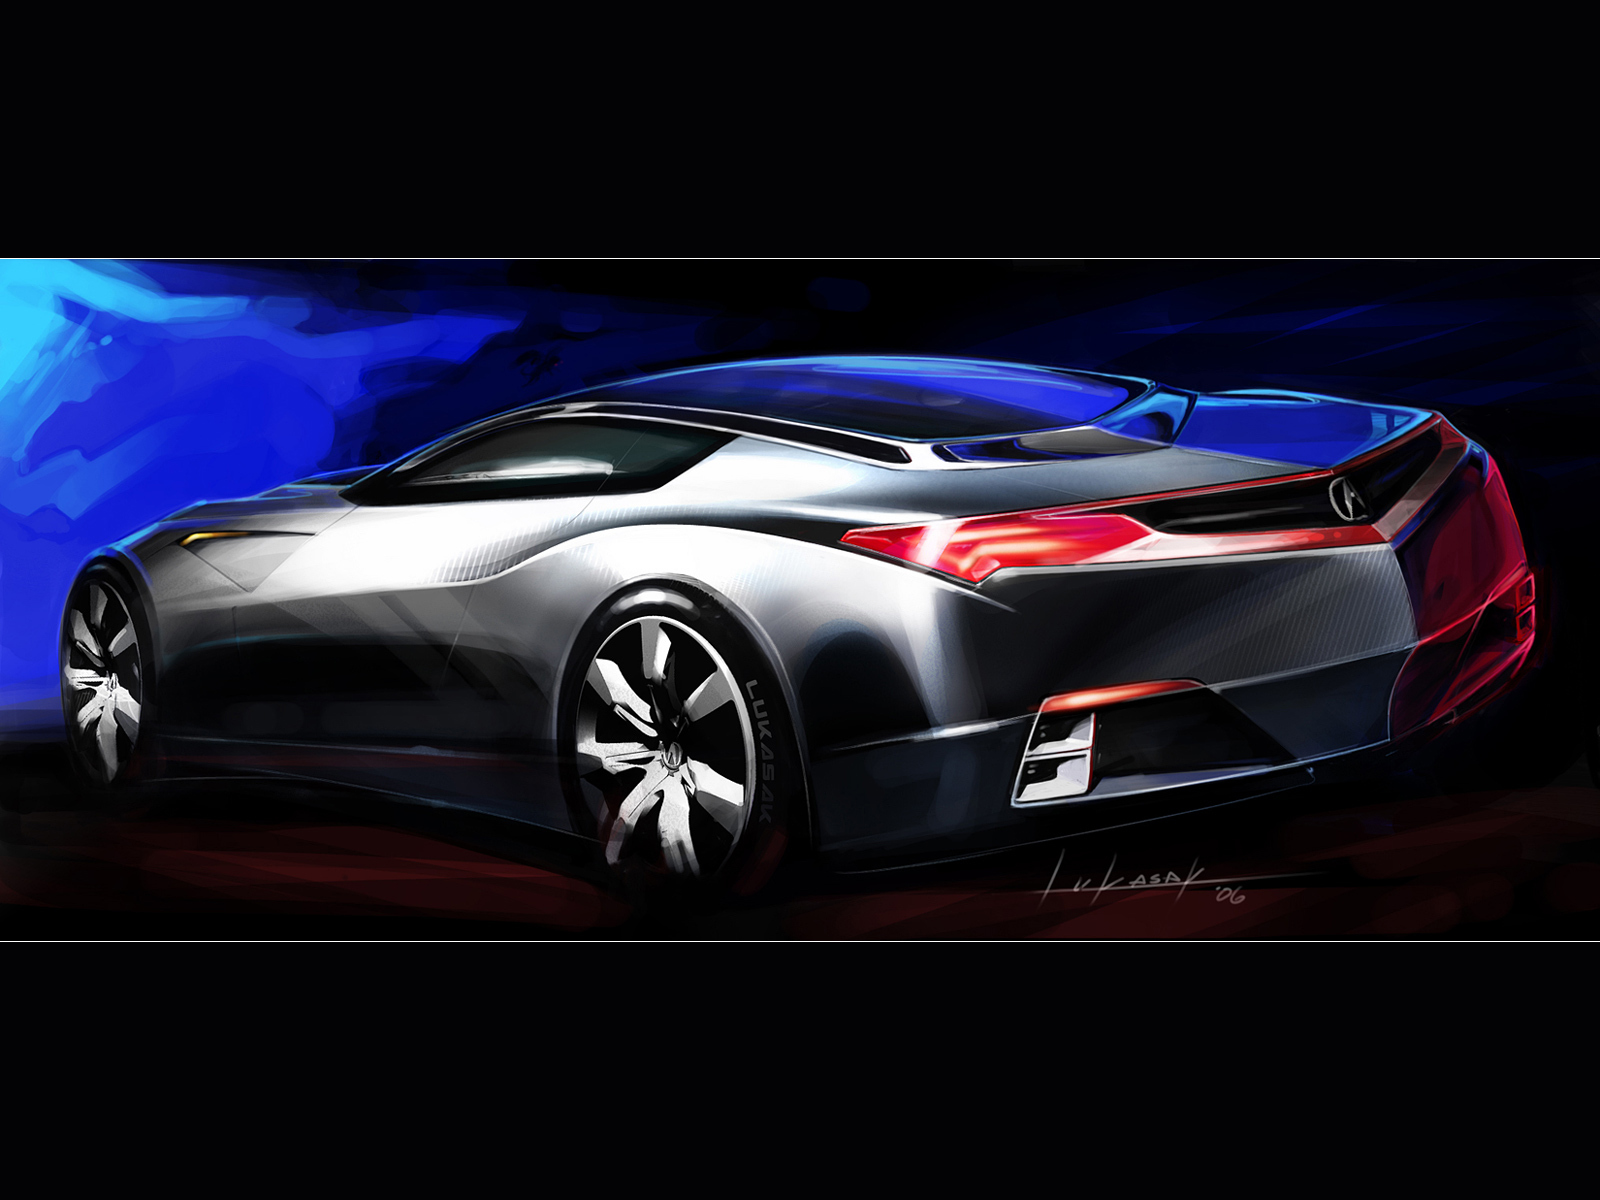 Funny wallpapers|HD wallpapers: sports cars wallpapers 2009